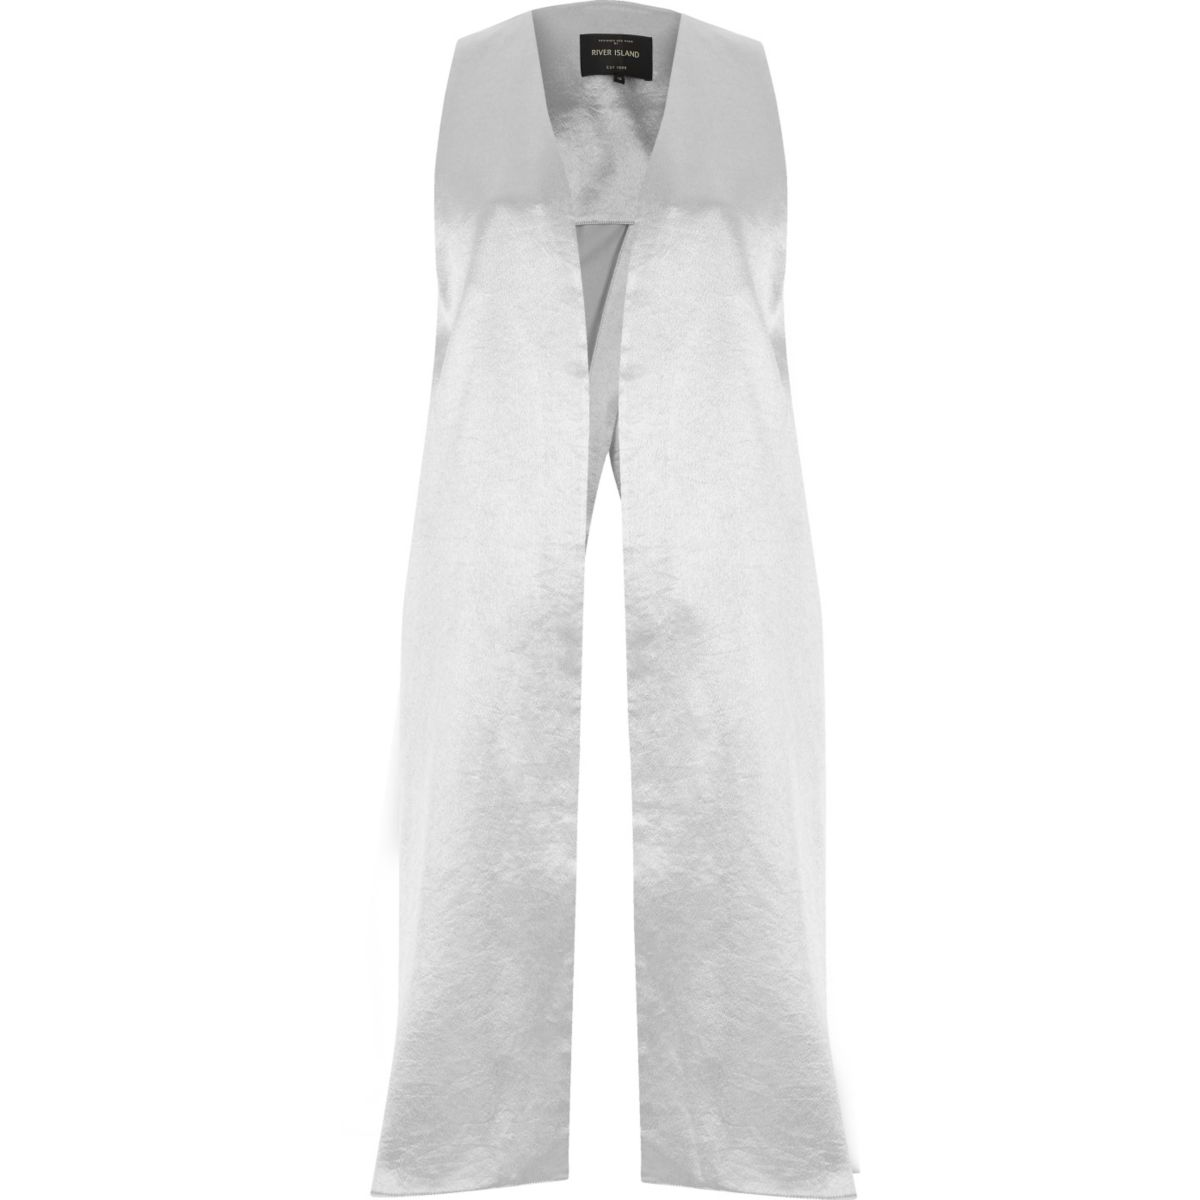 Silver satin split back duster jacket